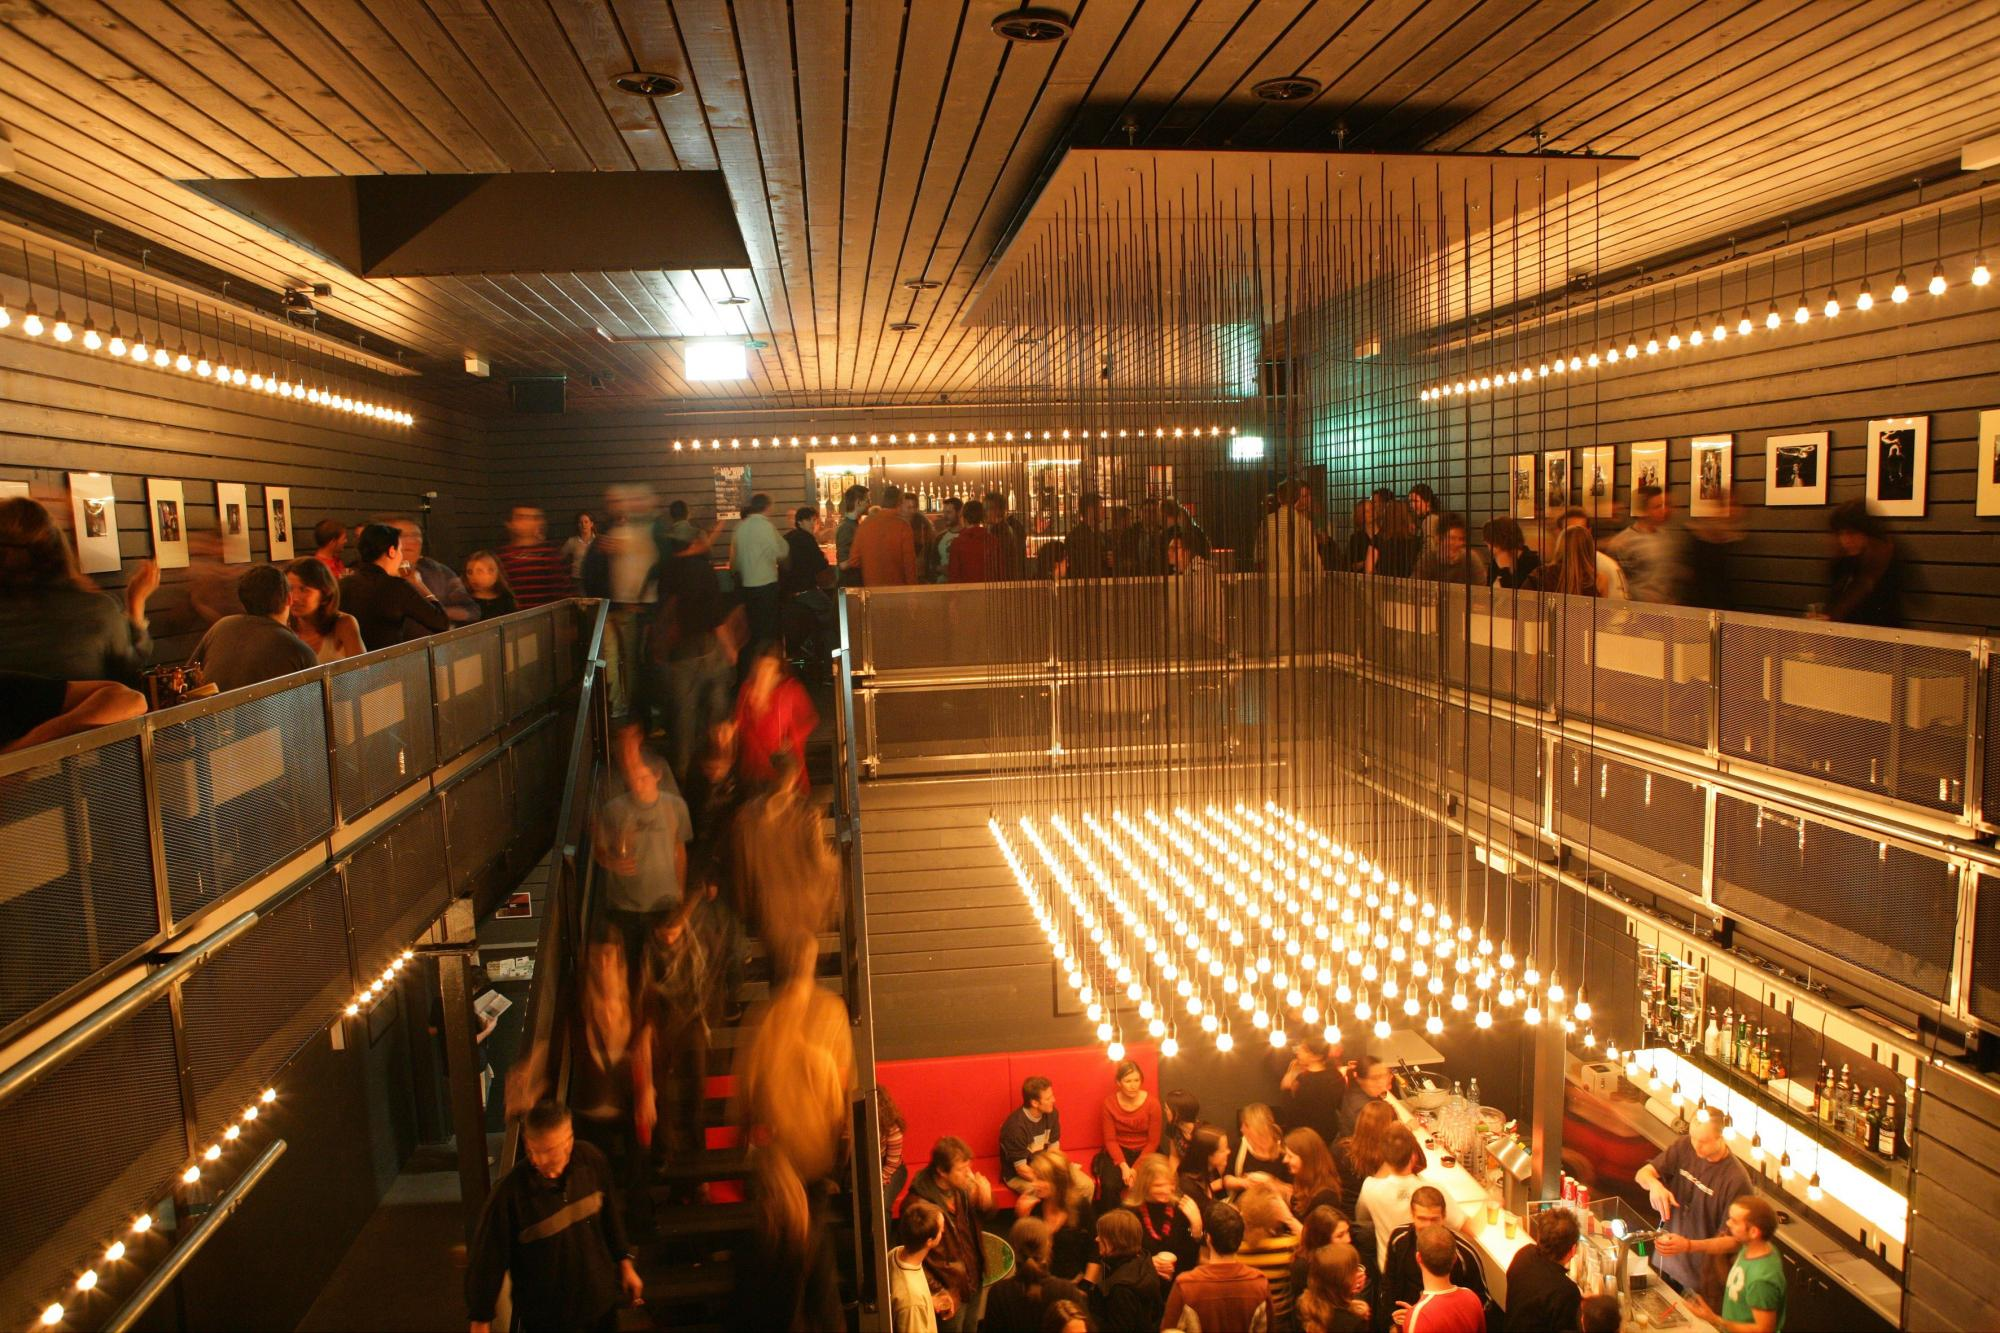 Les Docks Concert Hall